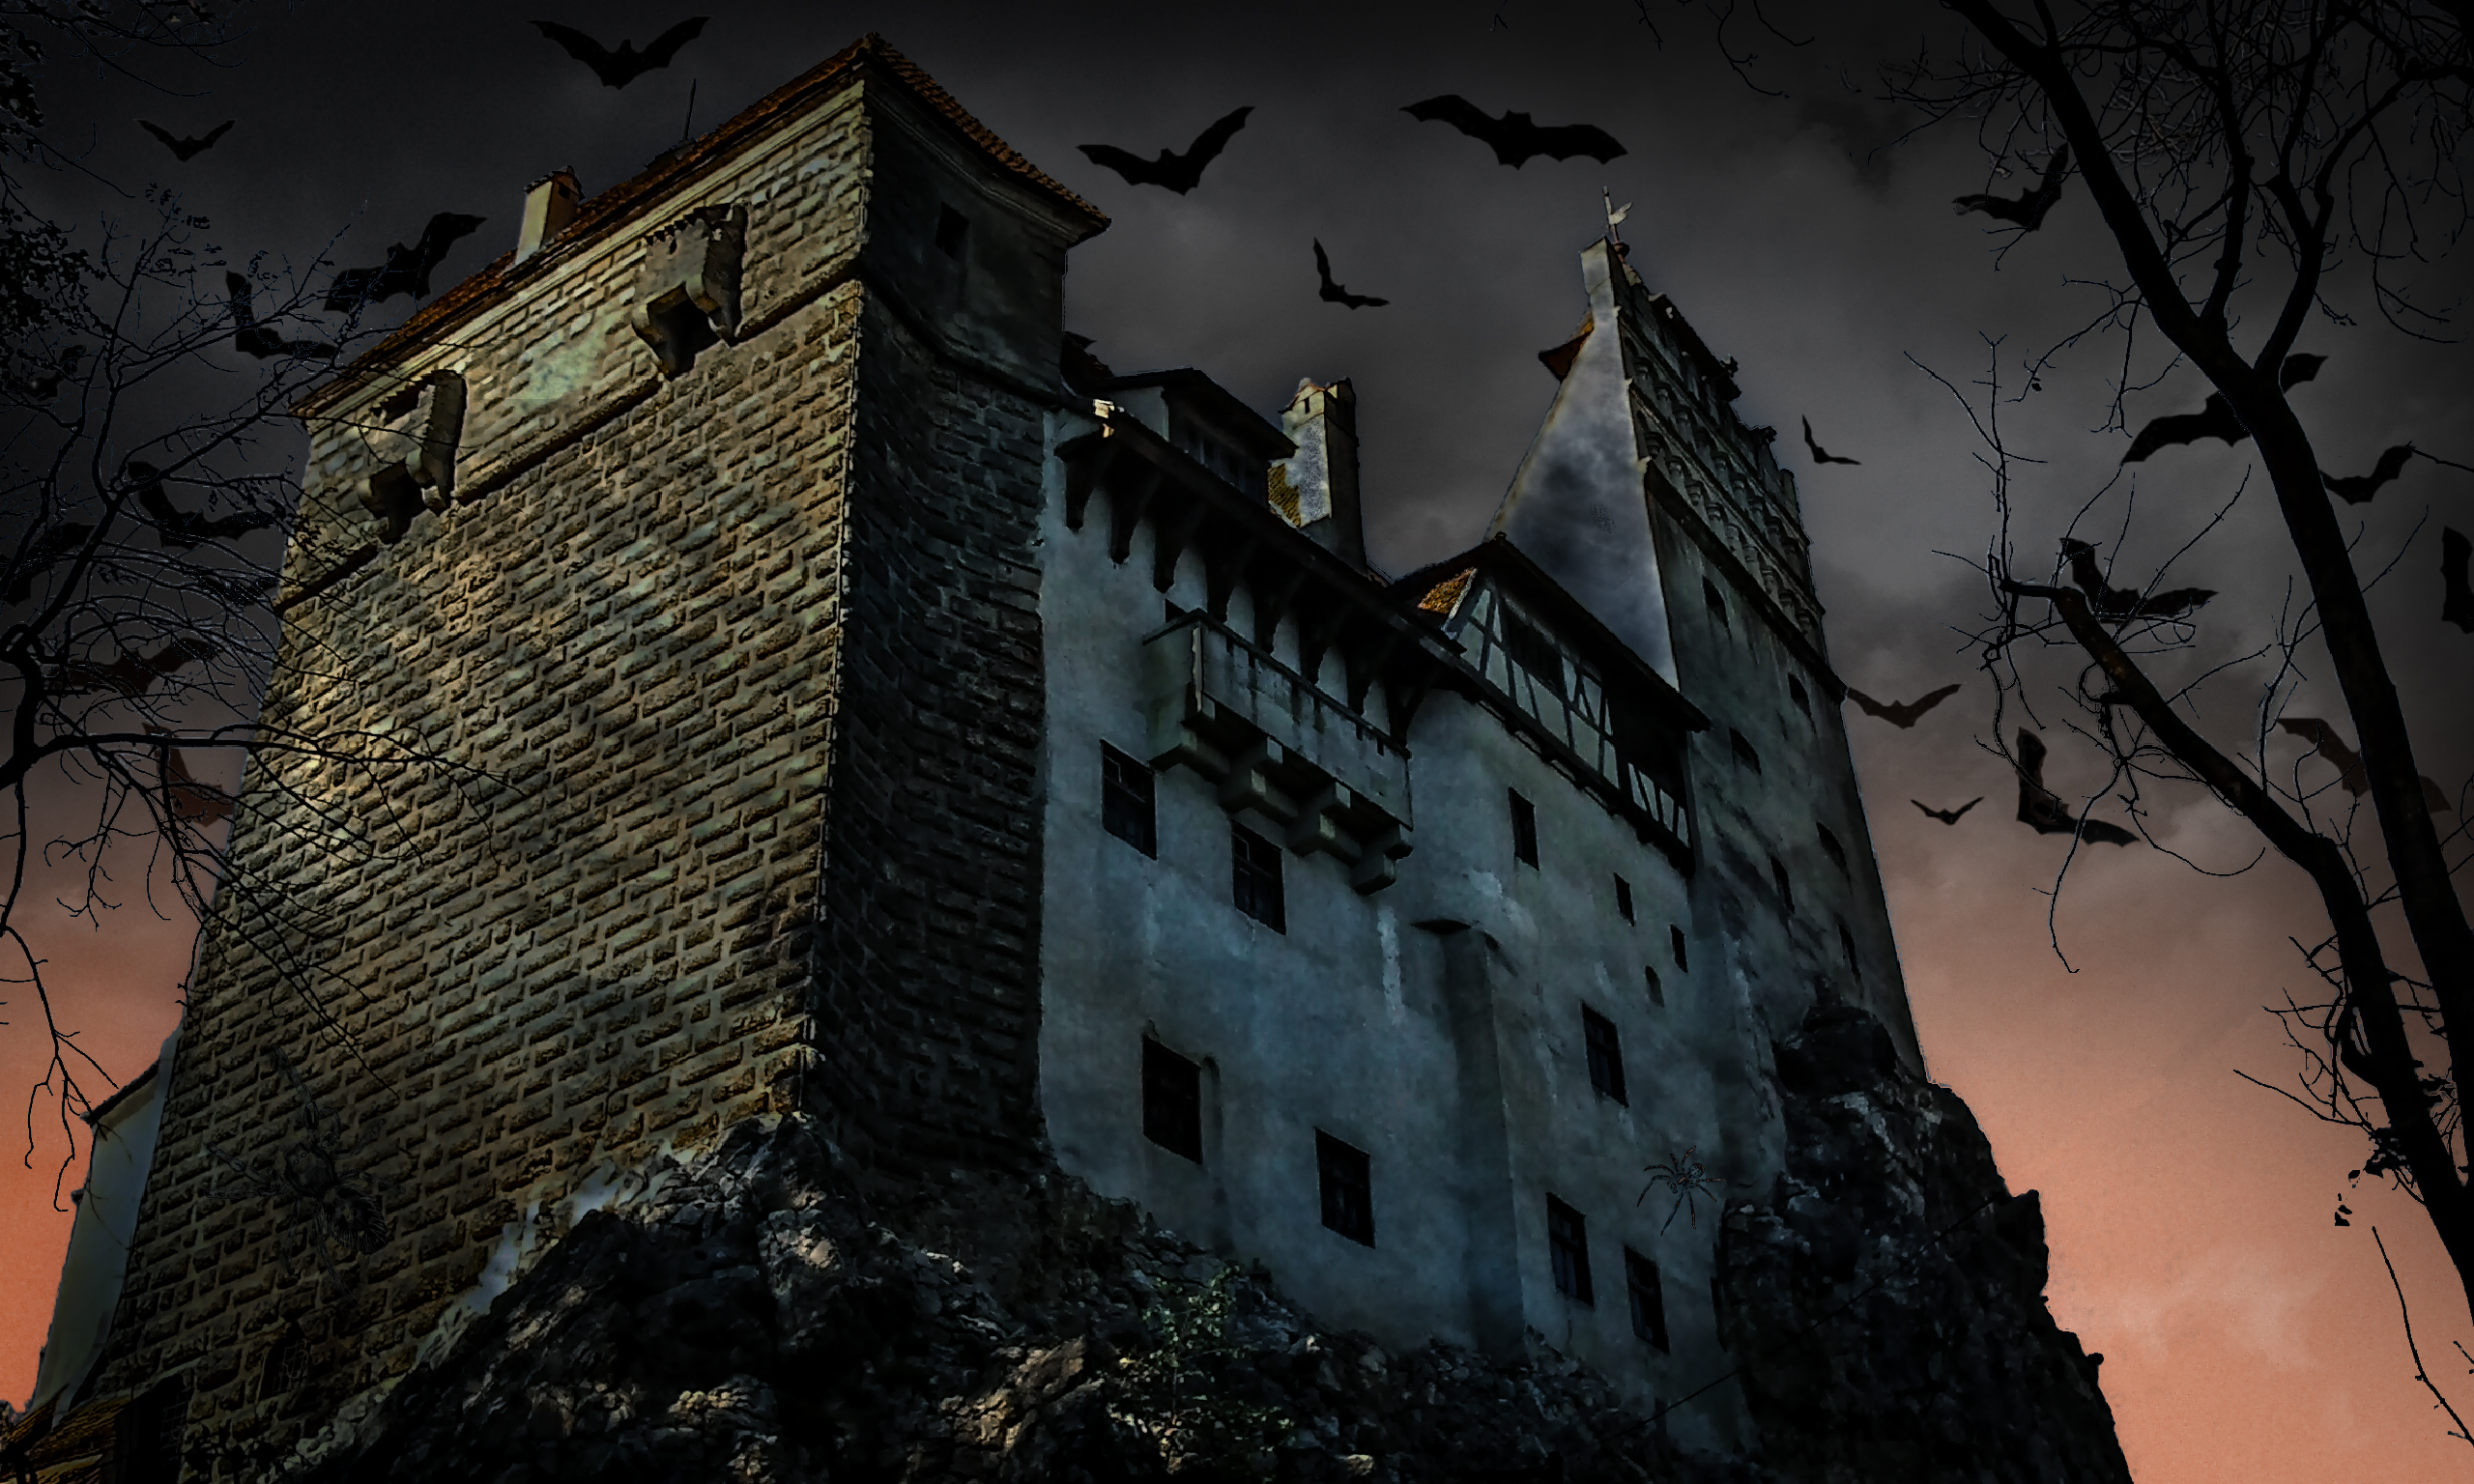 Castle For Sale Romania 2015 Halloween In Transylvania Romania Sold Out